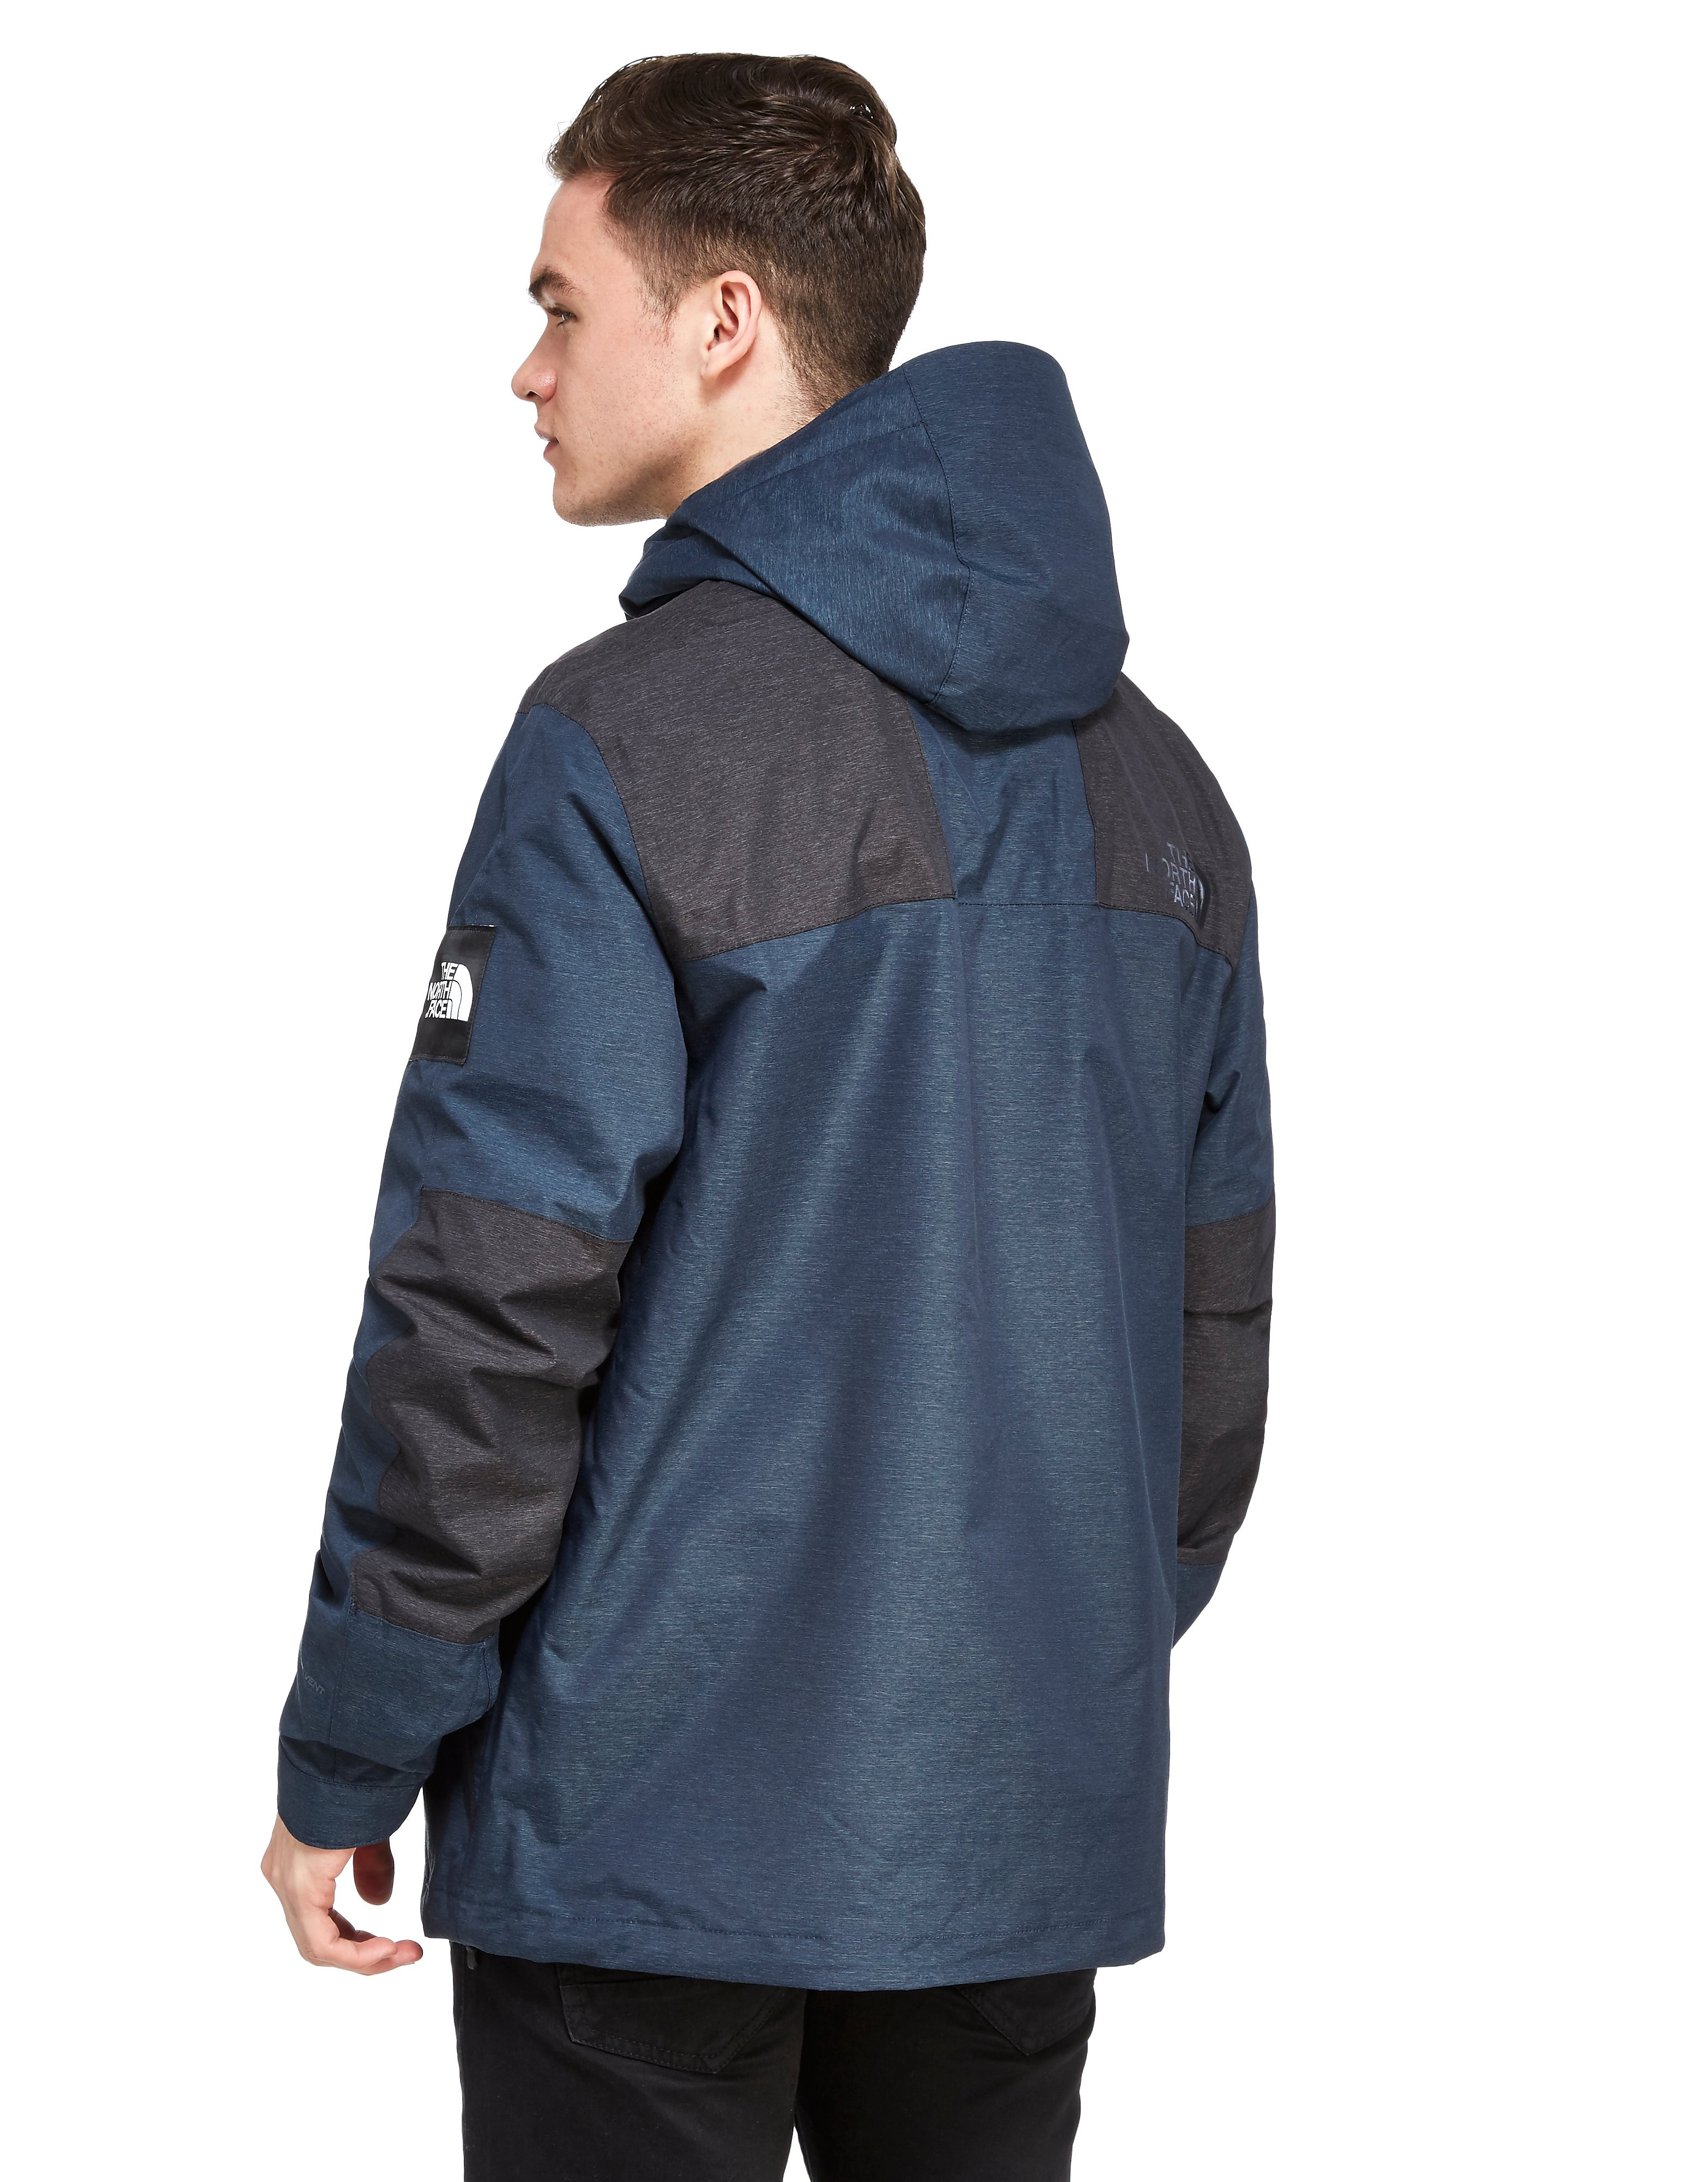 The North Face 1990 Mountain Triclimate Jacket